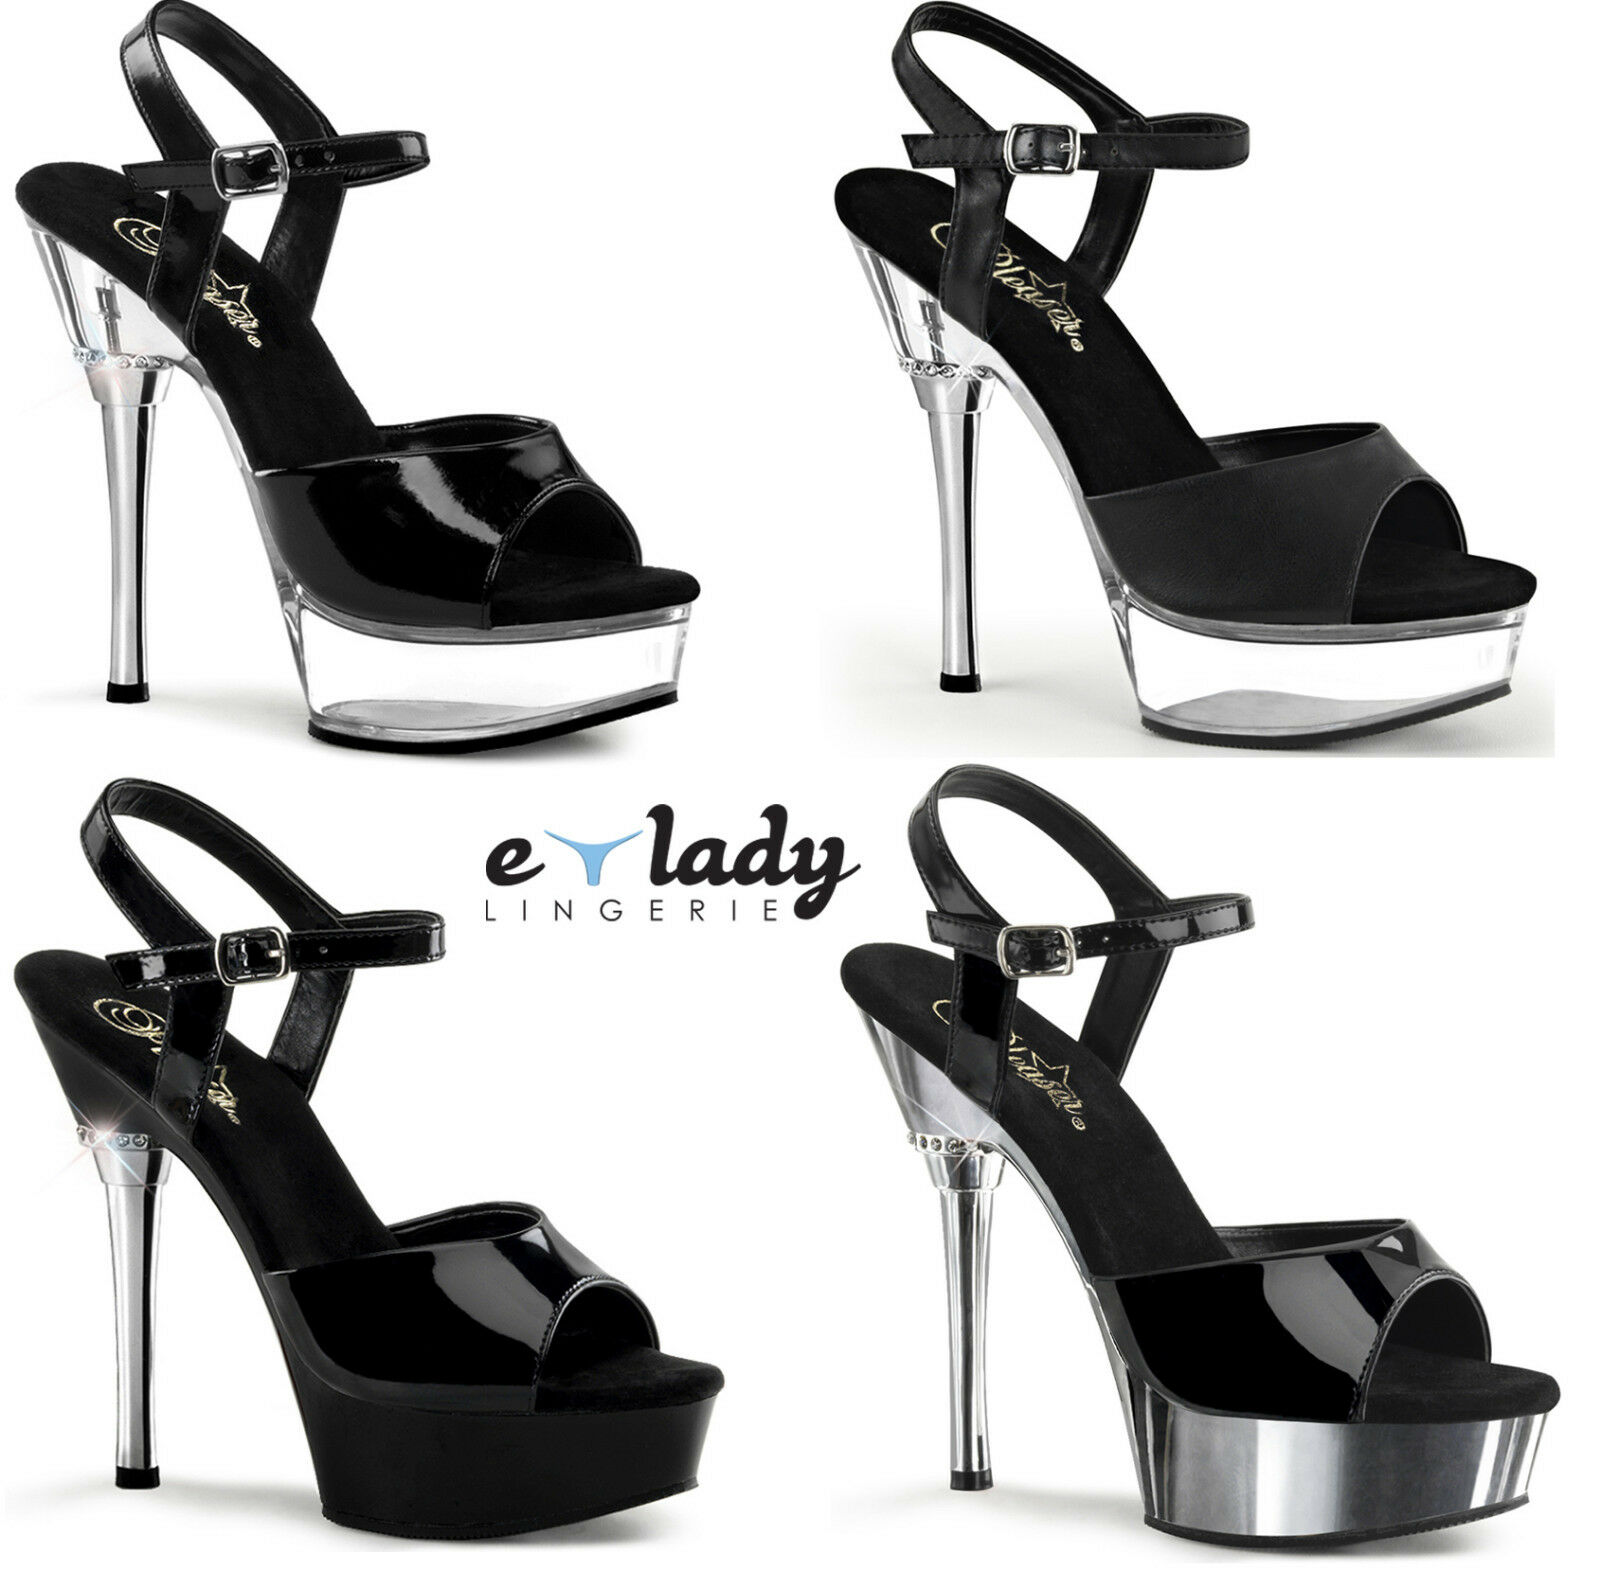 Pleaser Allure-609 shoes Platform Sandals Ankle Strap High Heels Pole Dancing